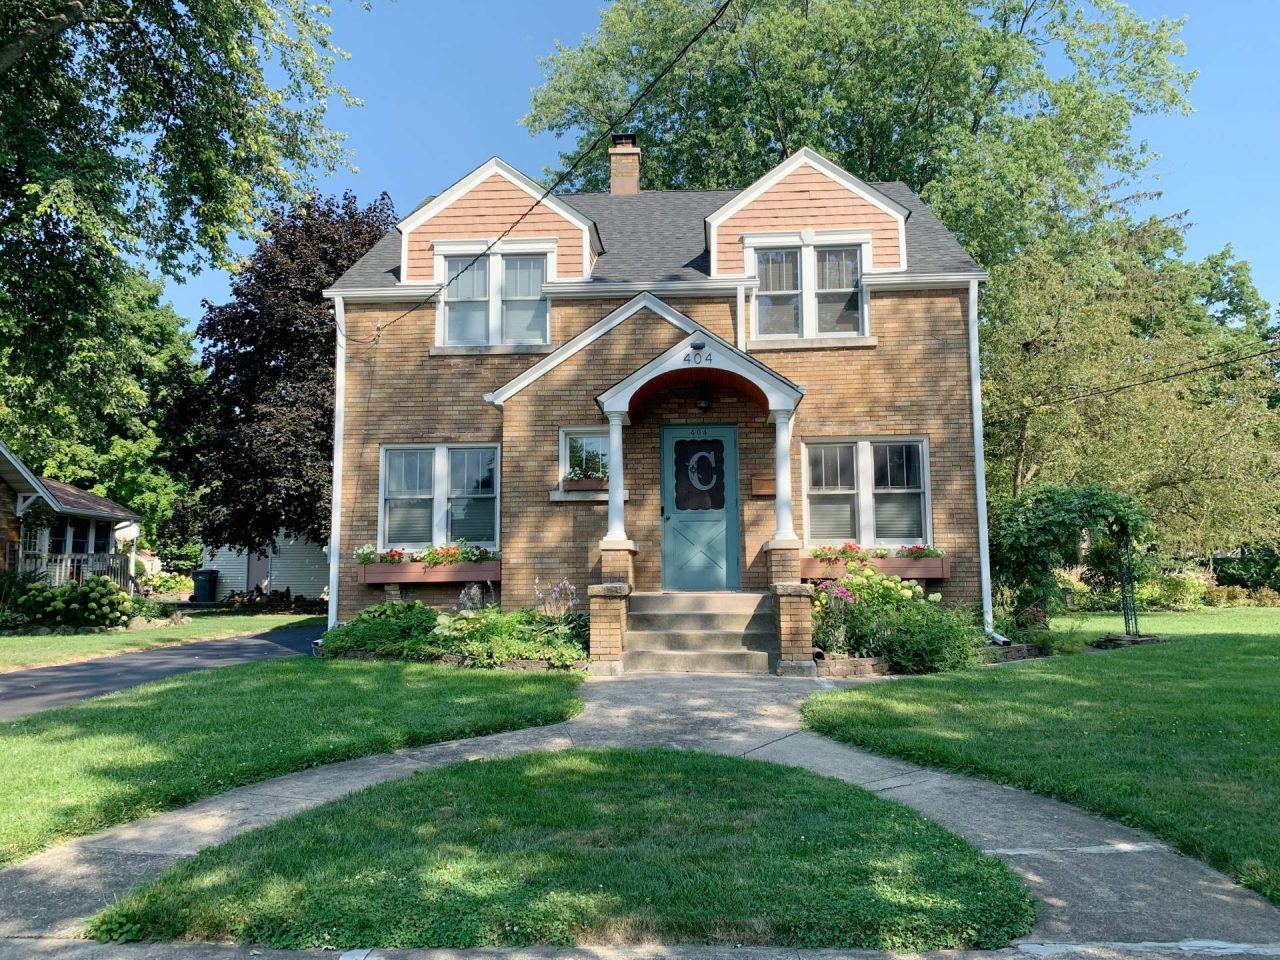 Lockport Illinois Home with Colored Door and Window boxes